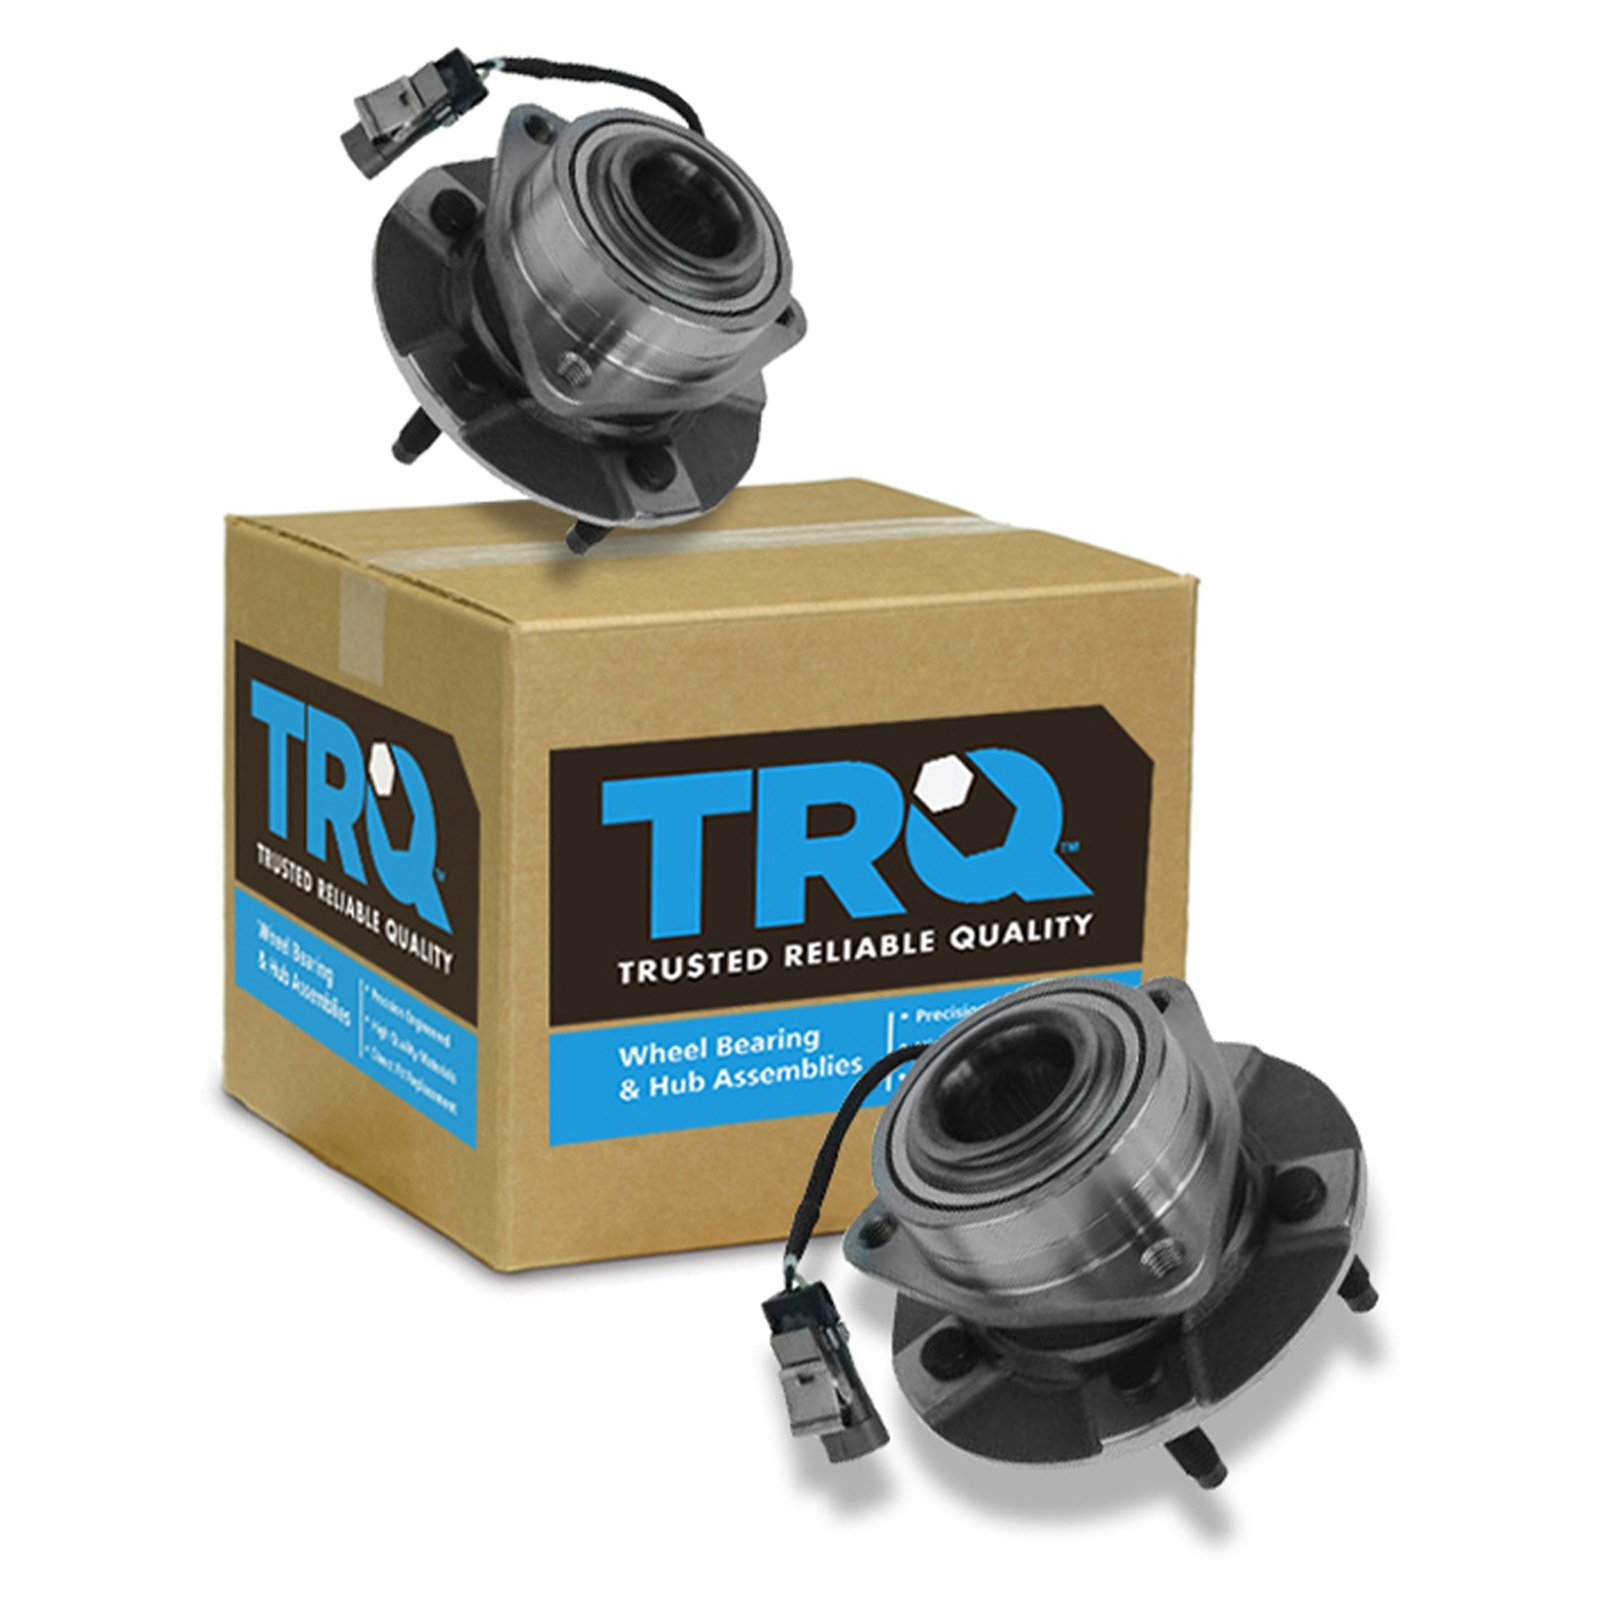 TRQ Front Wheel Hub & Bearing Assembly Pair for Equinox Torrent Vue w/ABS by TRQ